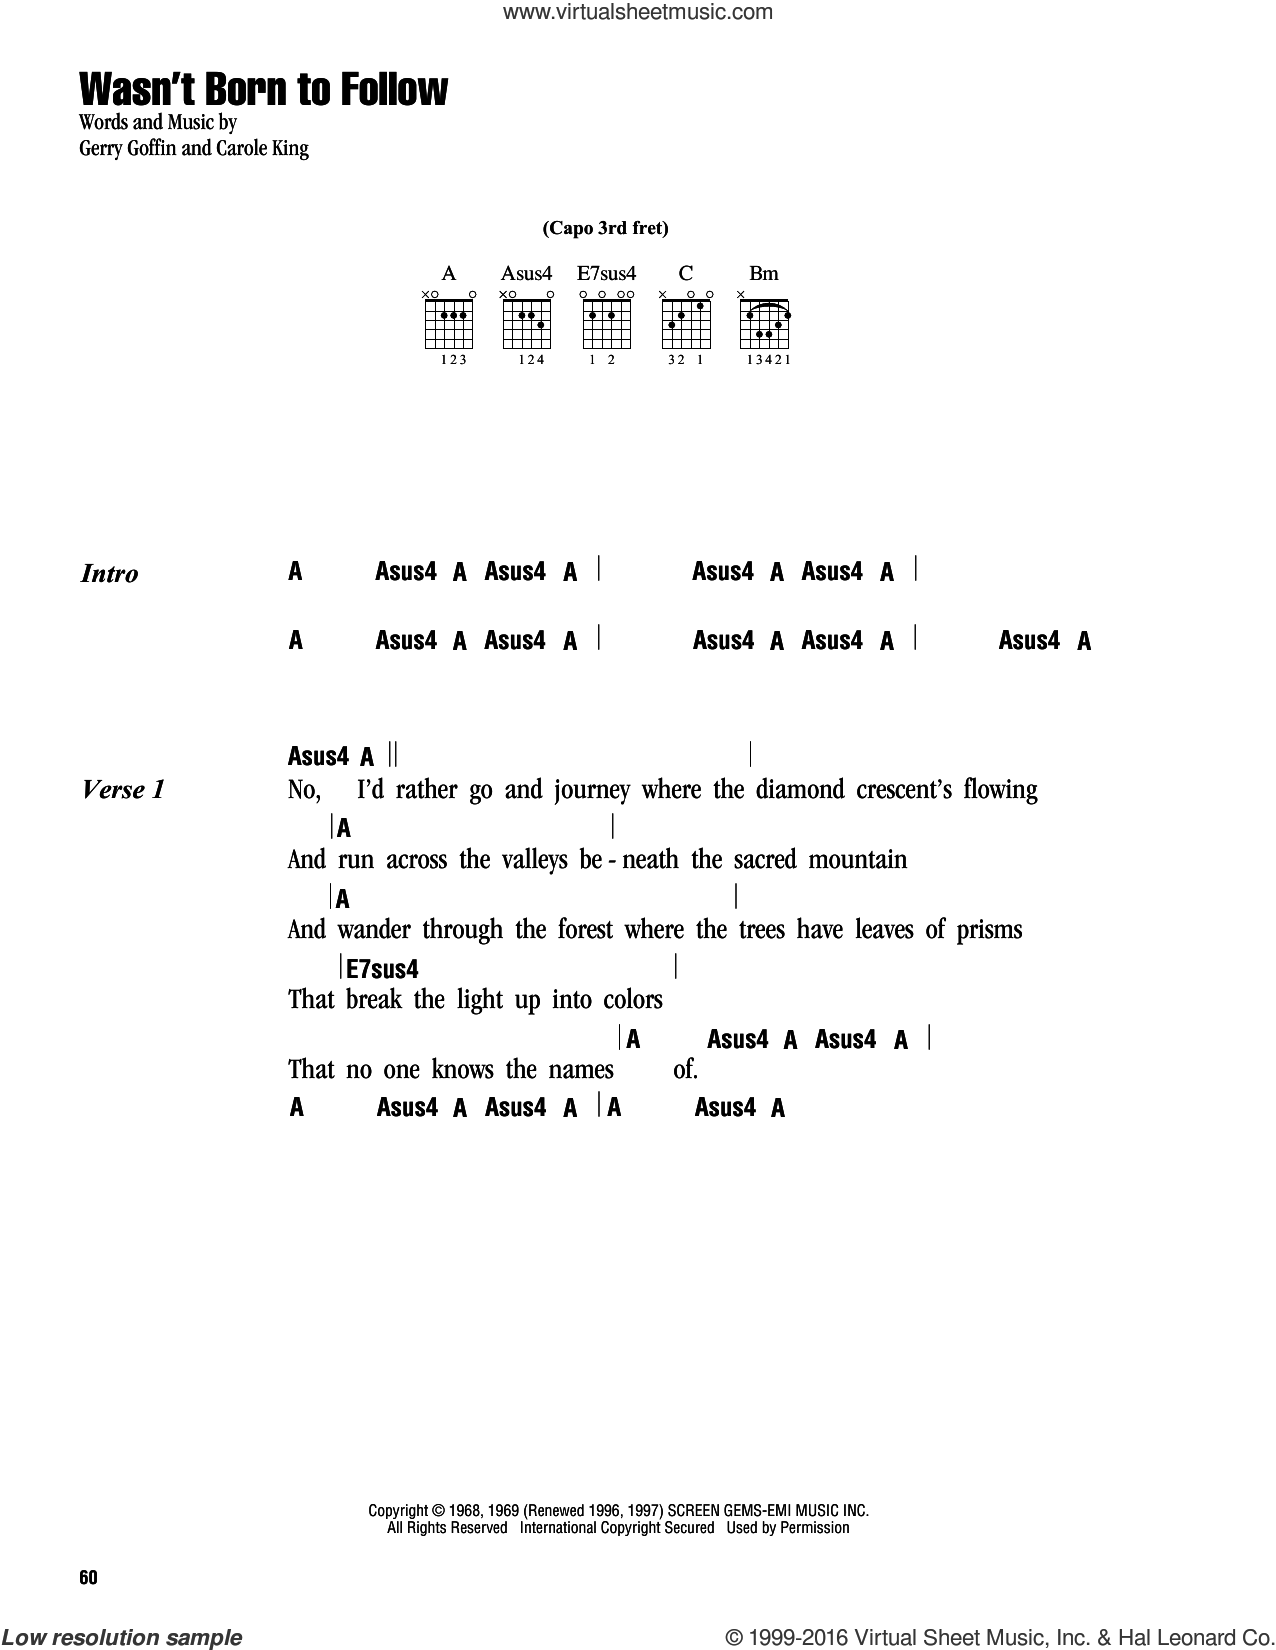 Wasn't Born To Follow sheet music for guitar (chords) by Gerry Goffin and Carole King. Score Image Preview.